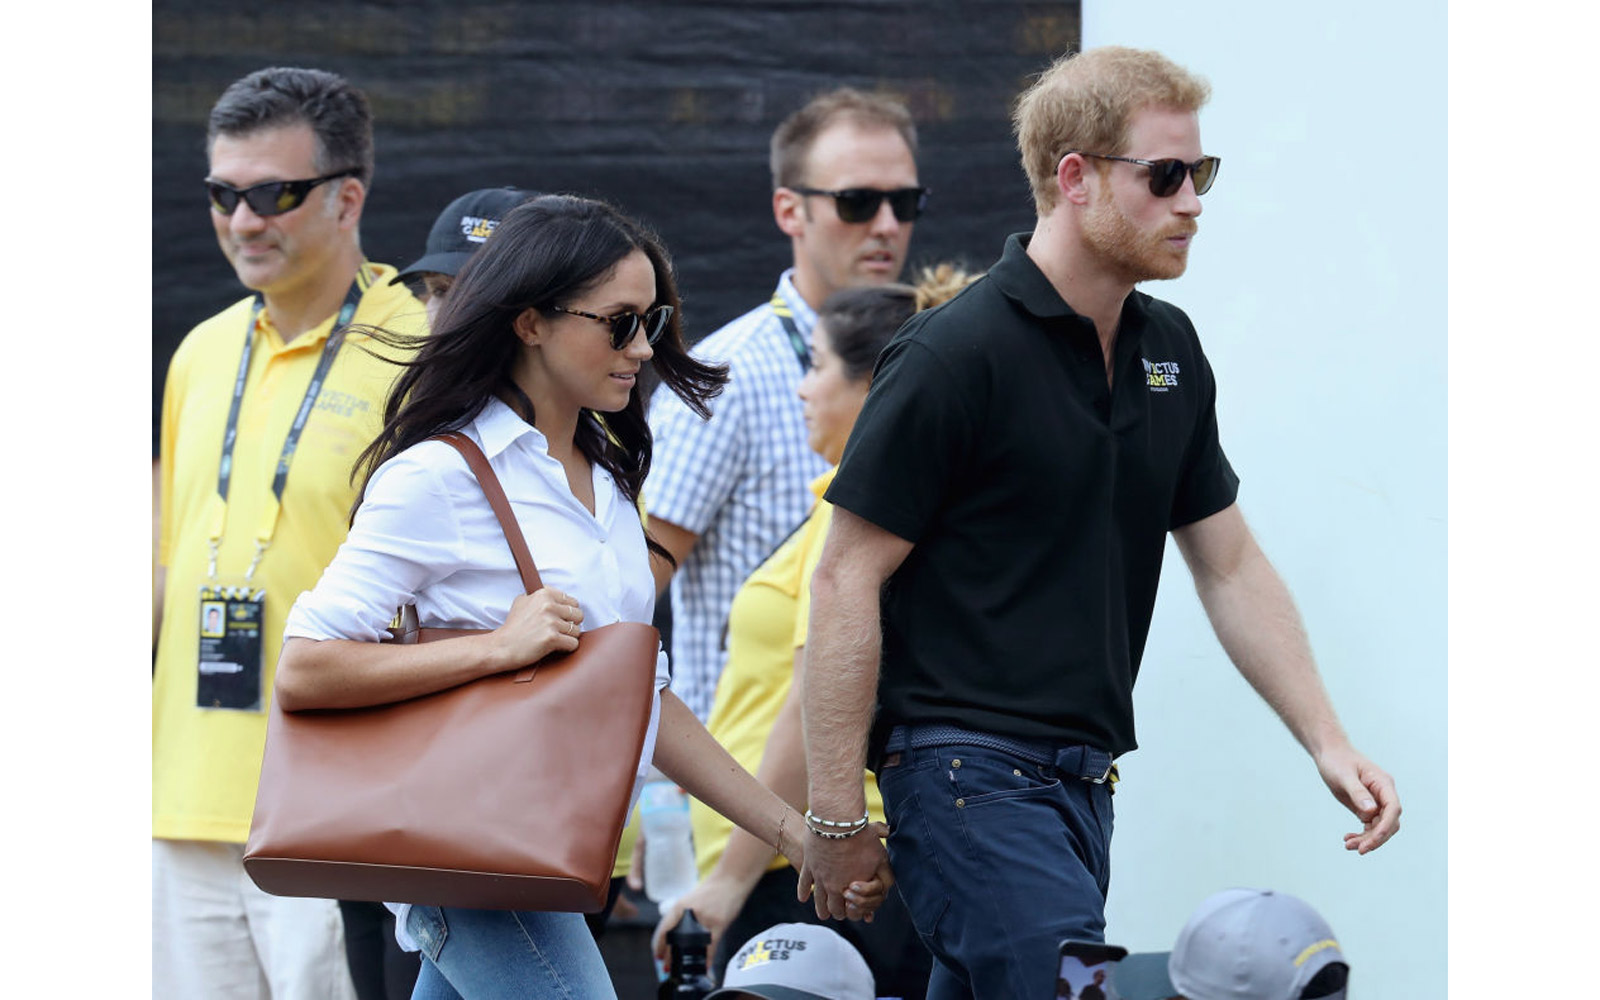 Meghan Markle and Prince Harry hold hands at Invictus Games Toronto 2017 - Day 3